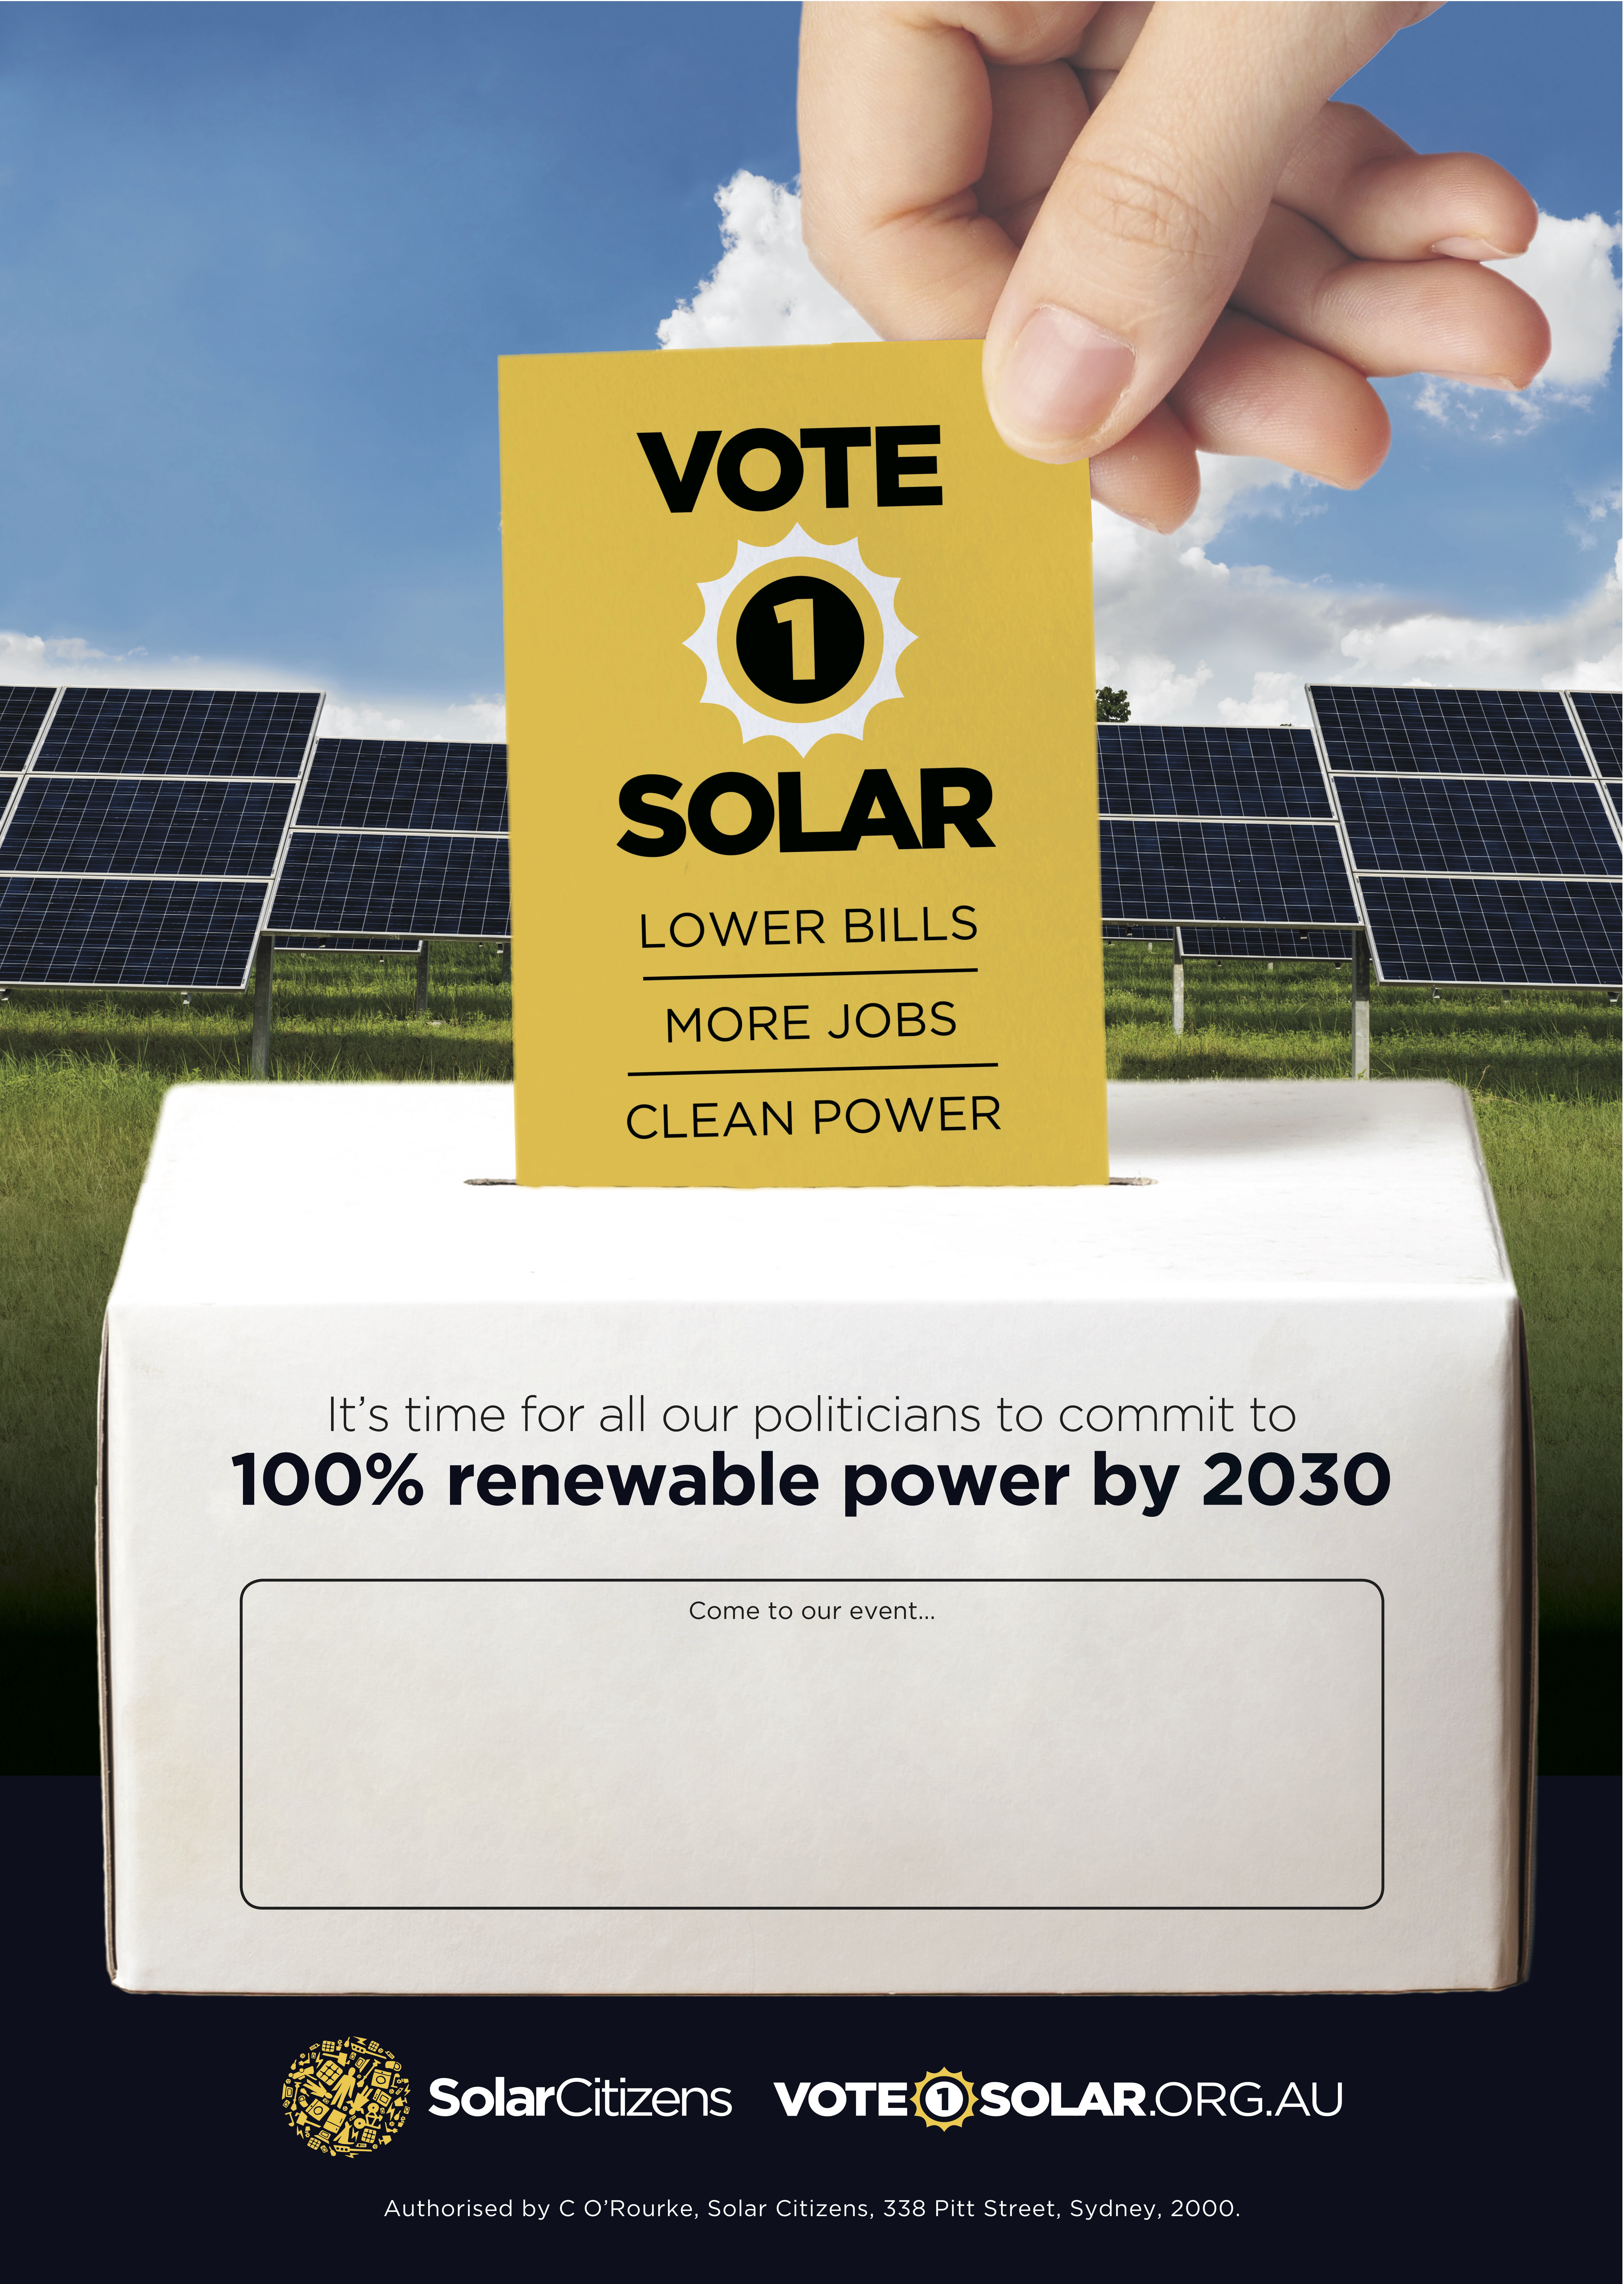 Solar_Citizens_Vote1Solar_A3_Posters_copy.jpg